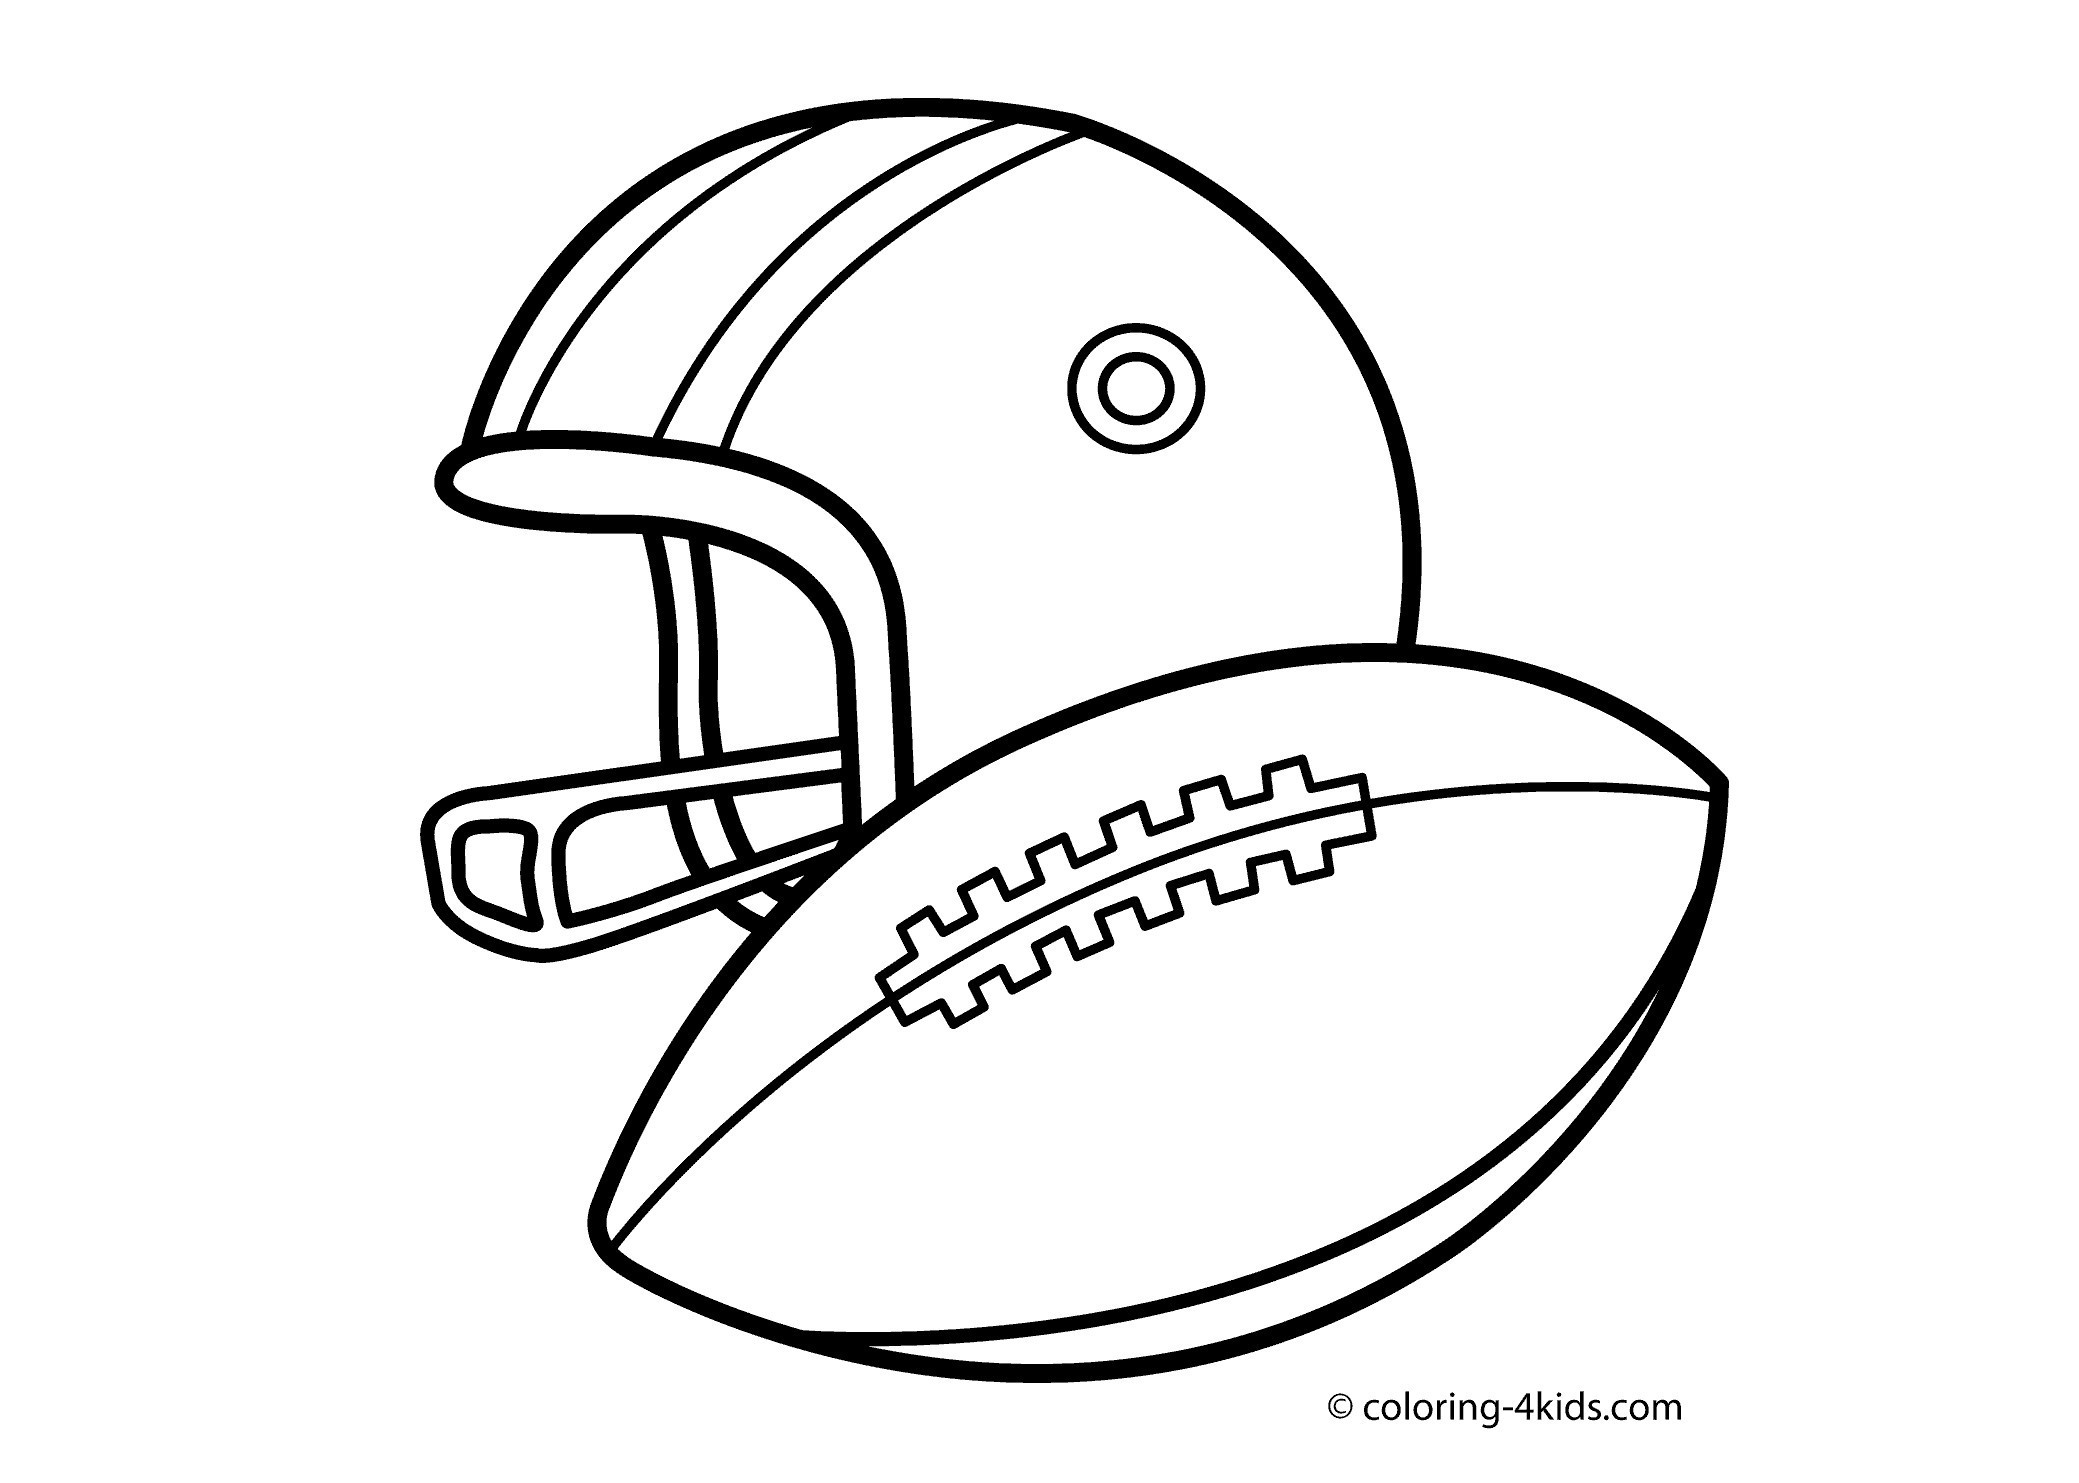 2079x1483 Free Coloring Sports Pages To Print Copy Printable Coloring Pages